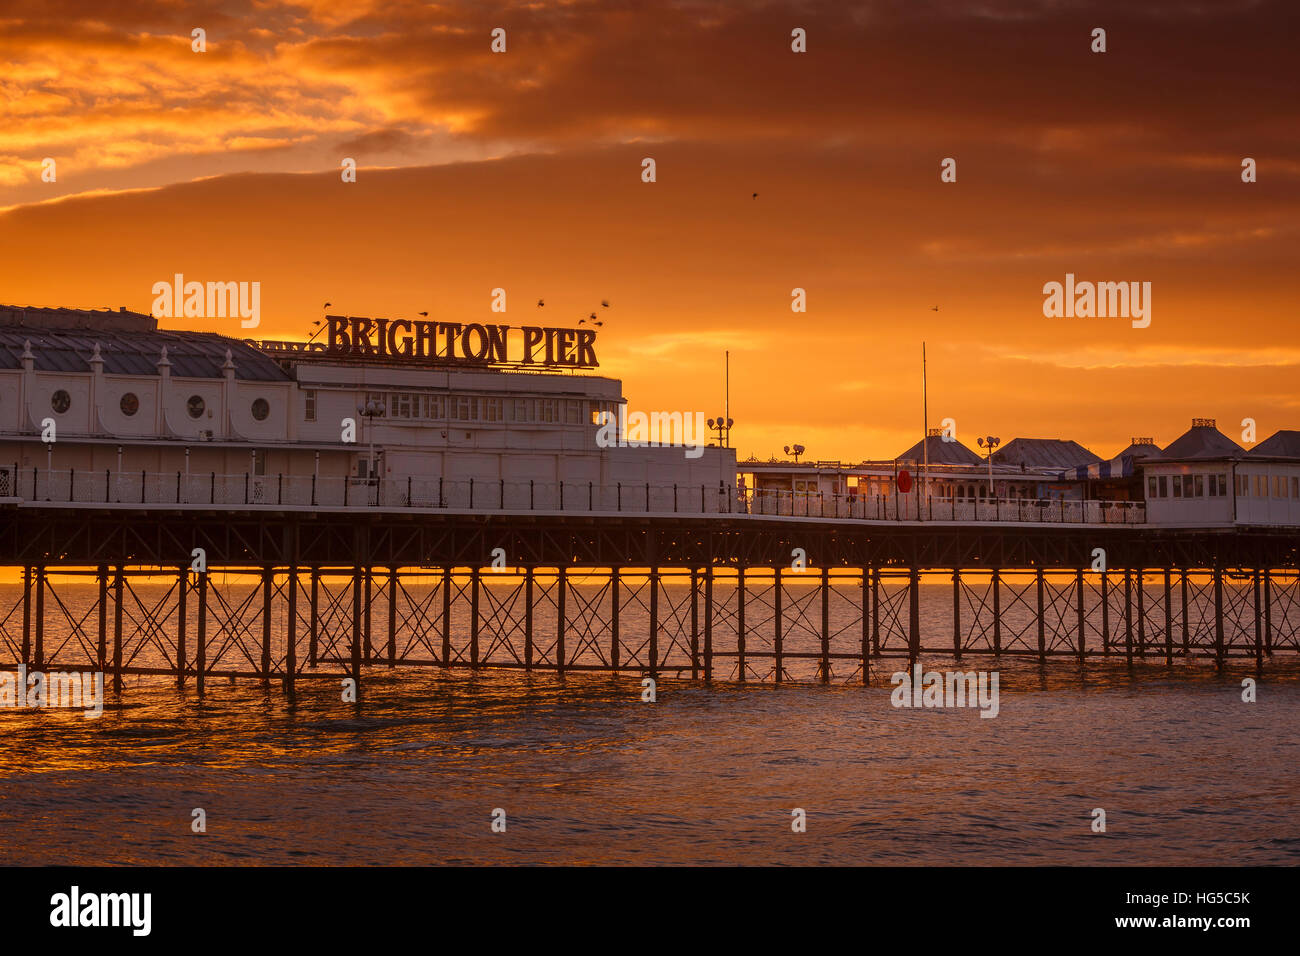 Brighton Pier at sunrise, Brighton, East Sussex, Sussex, England, United Kingdom - Stock Image